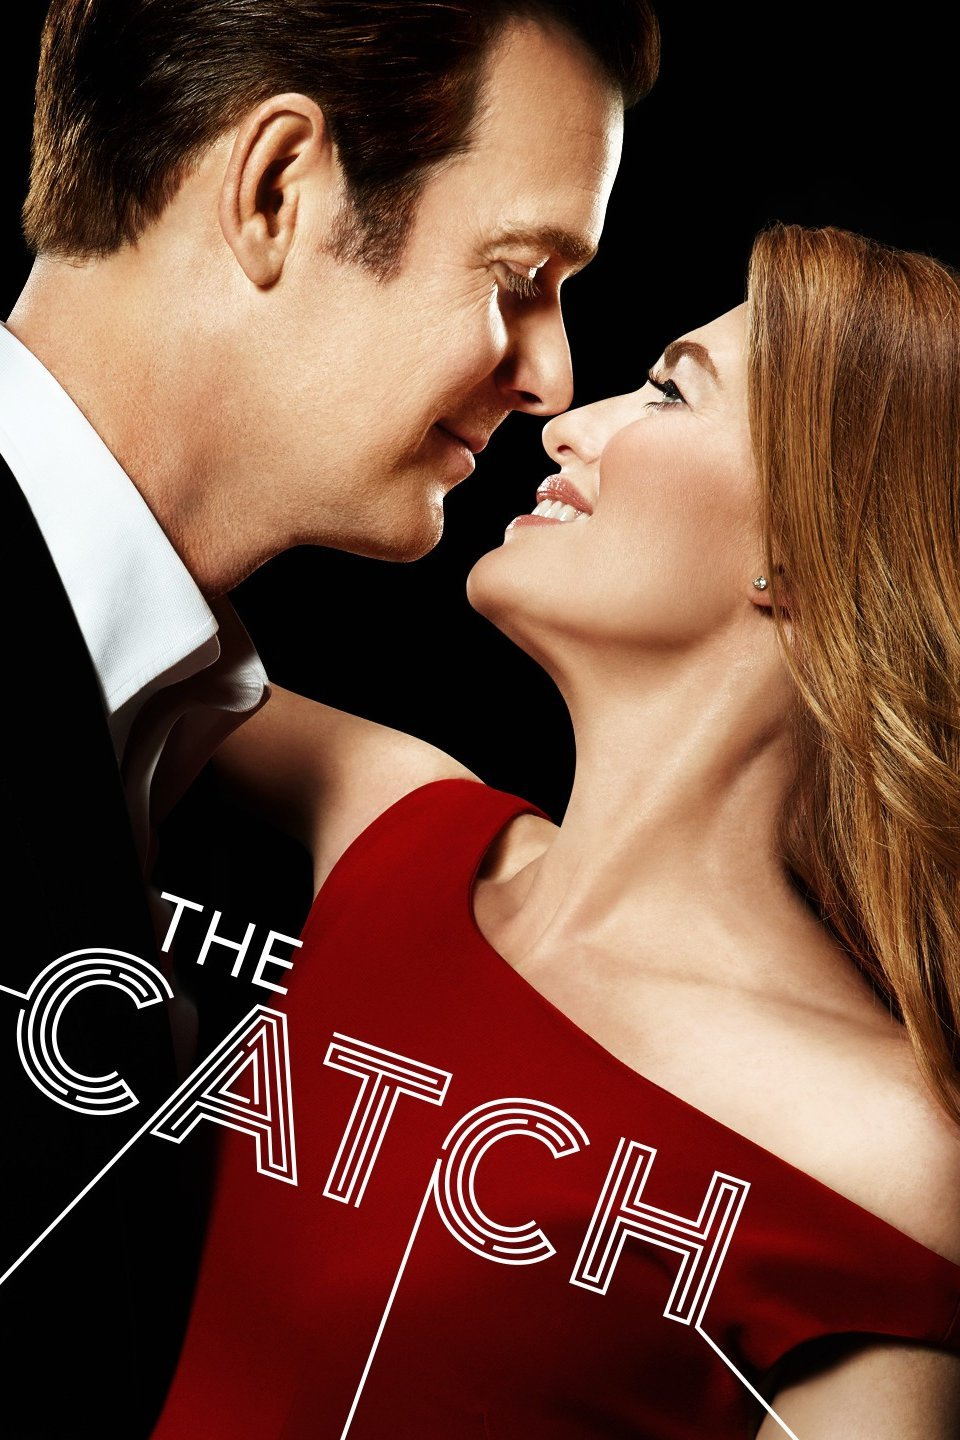 The Catch Season 2 Episode 9 480p WEB-DL 150MB